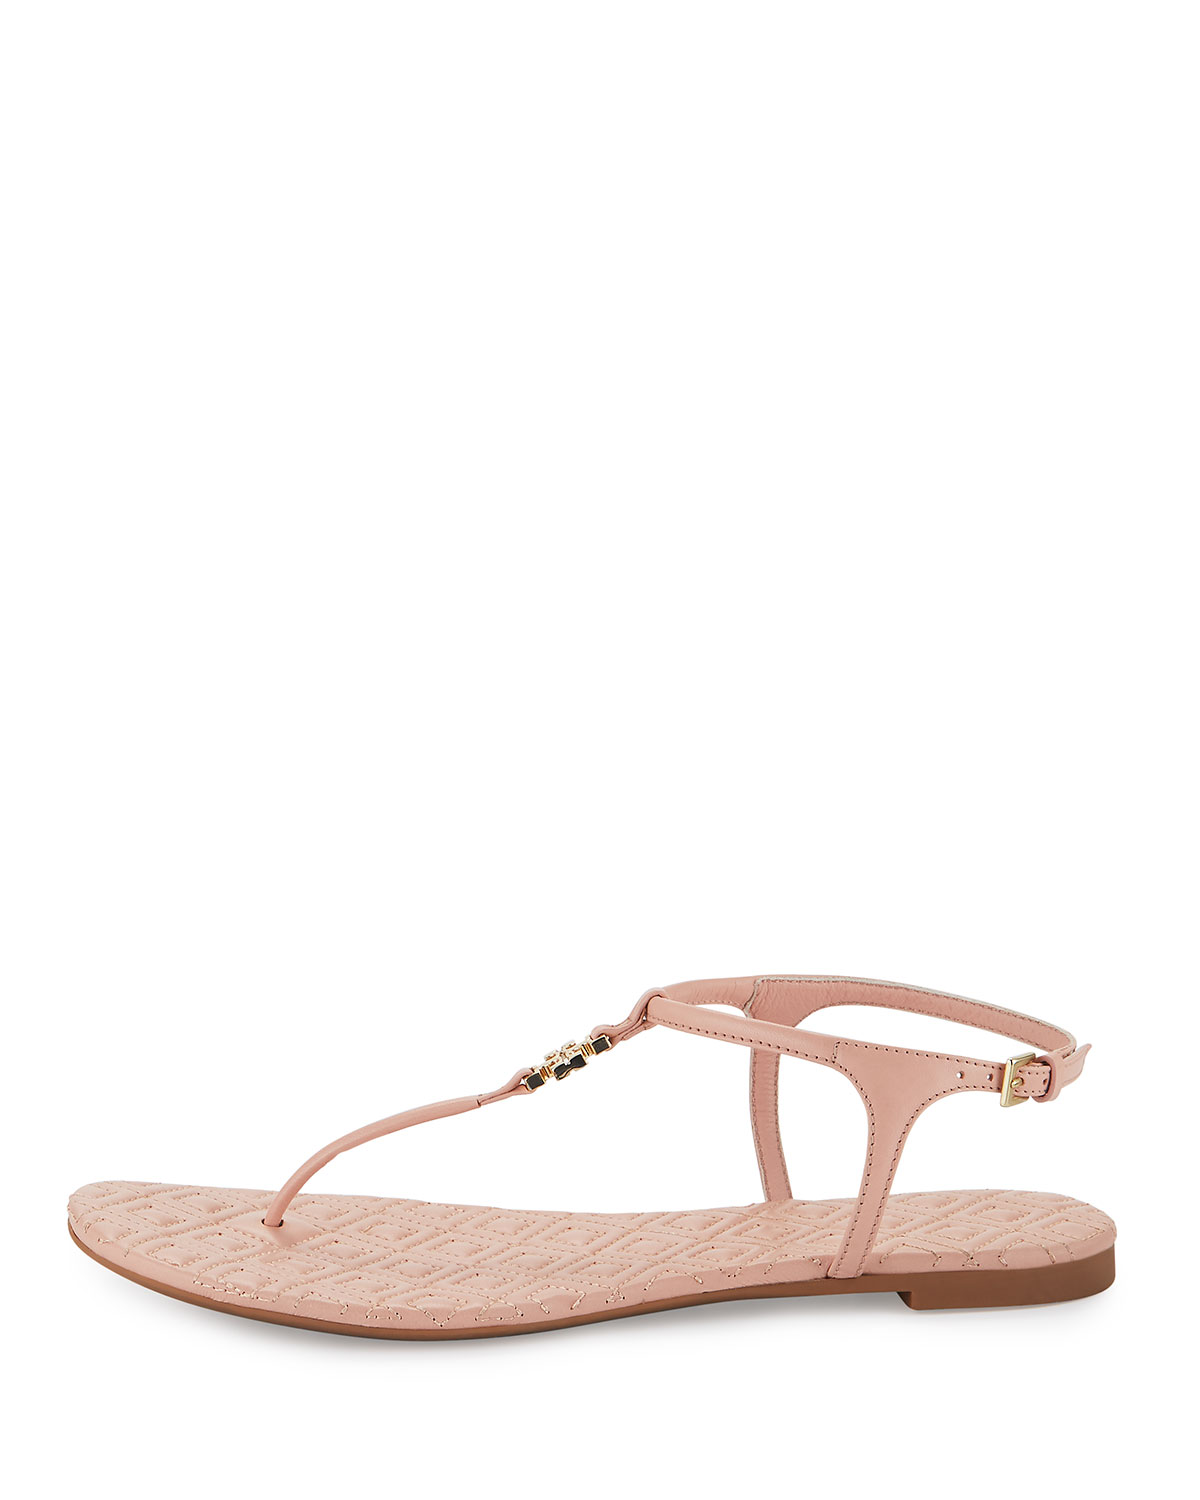 13195311f58ec Tory Burch Marion Quilted T-Strap Sandal